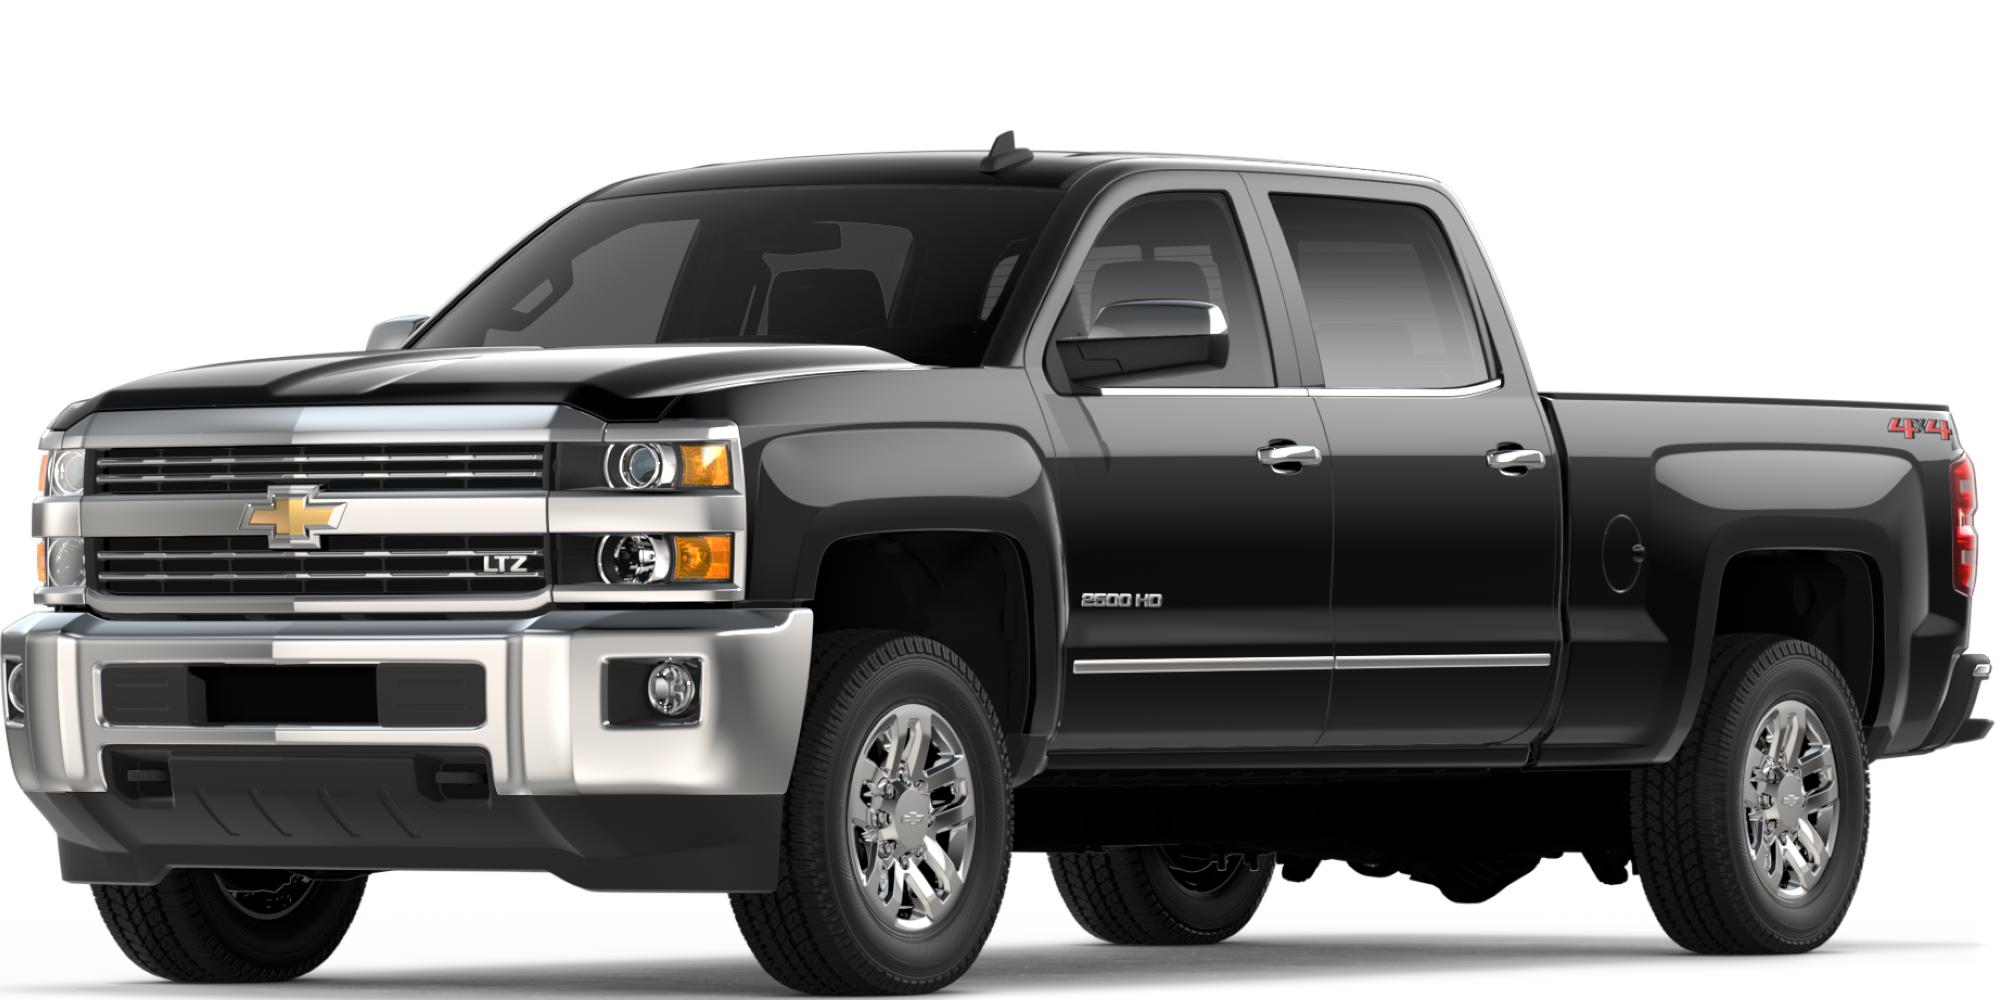 silverado 2500 y 3500 2018 camionetas heavy duty chevrolet. Black Bedroom Furniture Sets. Home Design Ideas